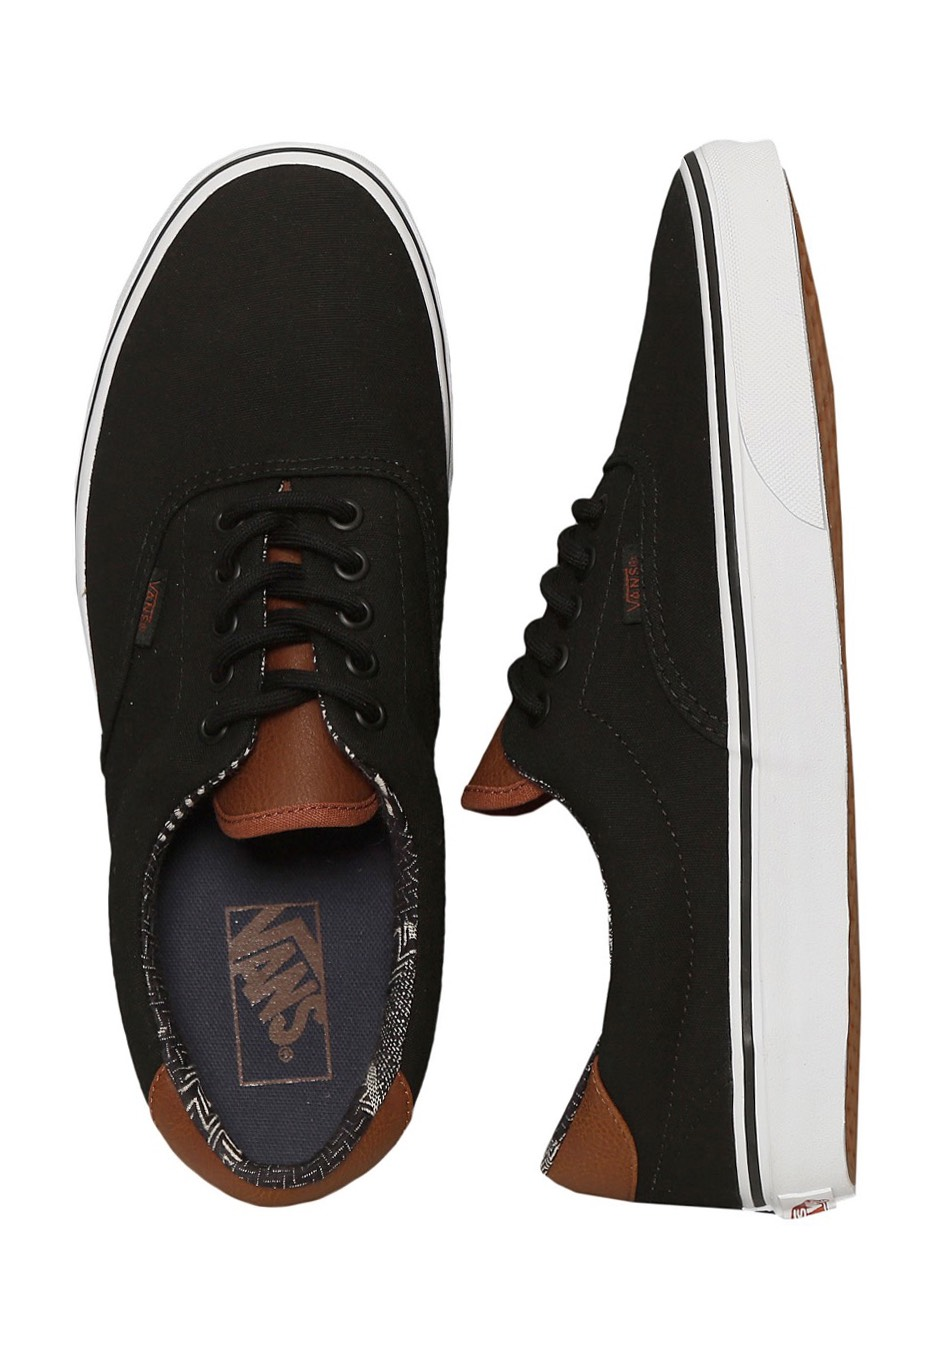 Vans - Era 59 C&L Black/Material Mix - Shoes